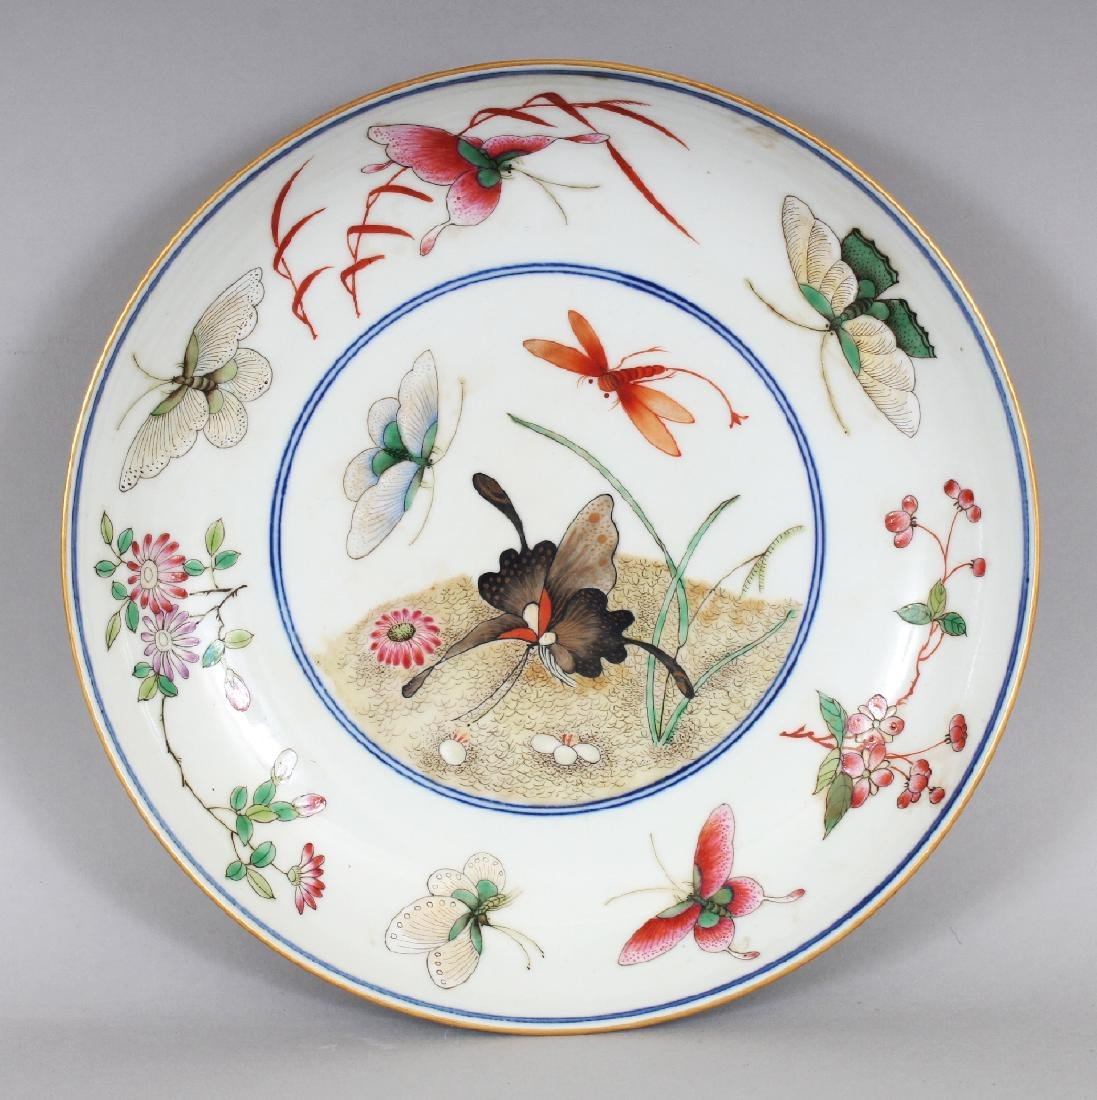 A CHINESE FAMILLE ROSE PORCELAIN BUTTERFLY SAUCER DISH,